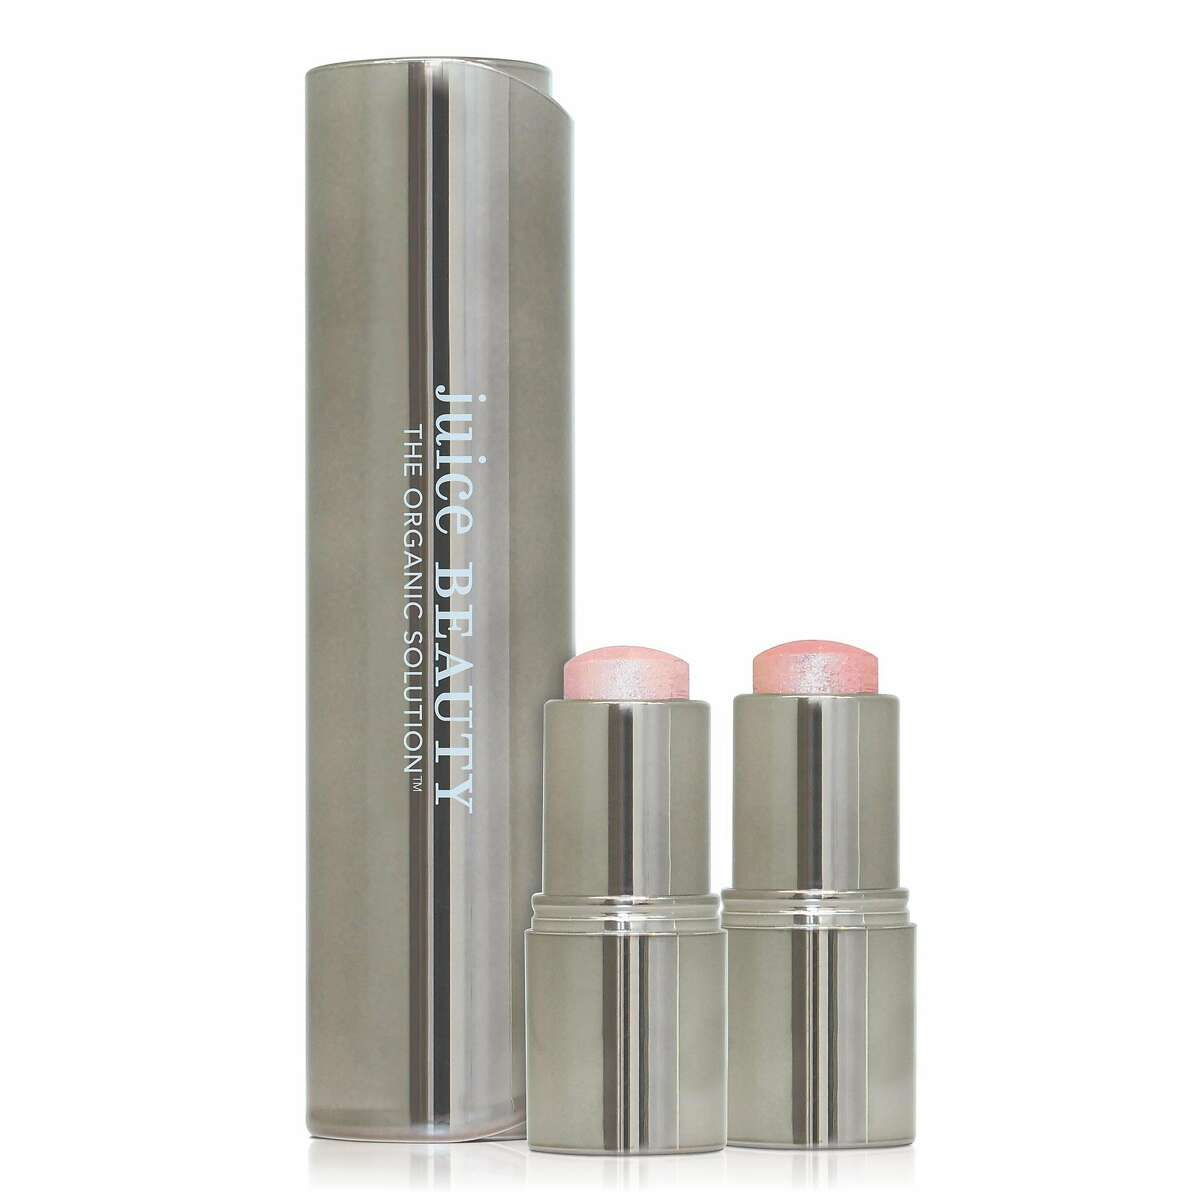 Juice Beauty's new Phyto-Pigments flash luminizers ($32) are multi-taskers duos that add radiance as well as contouring.